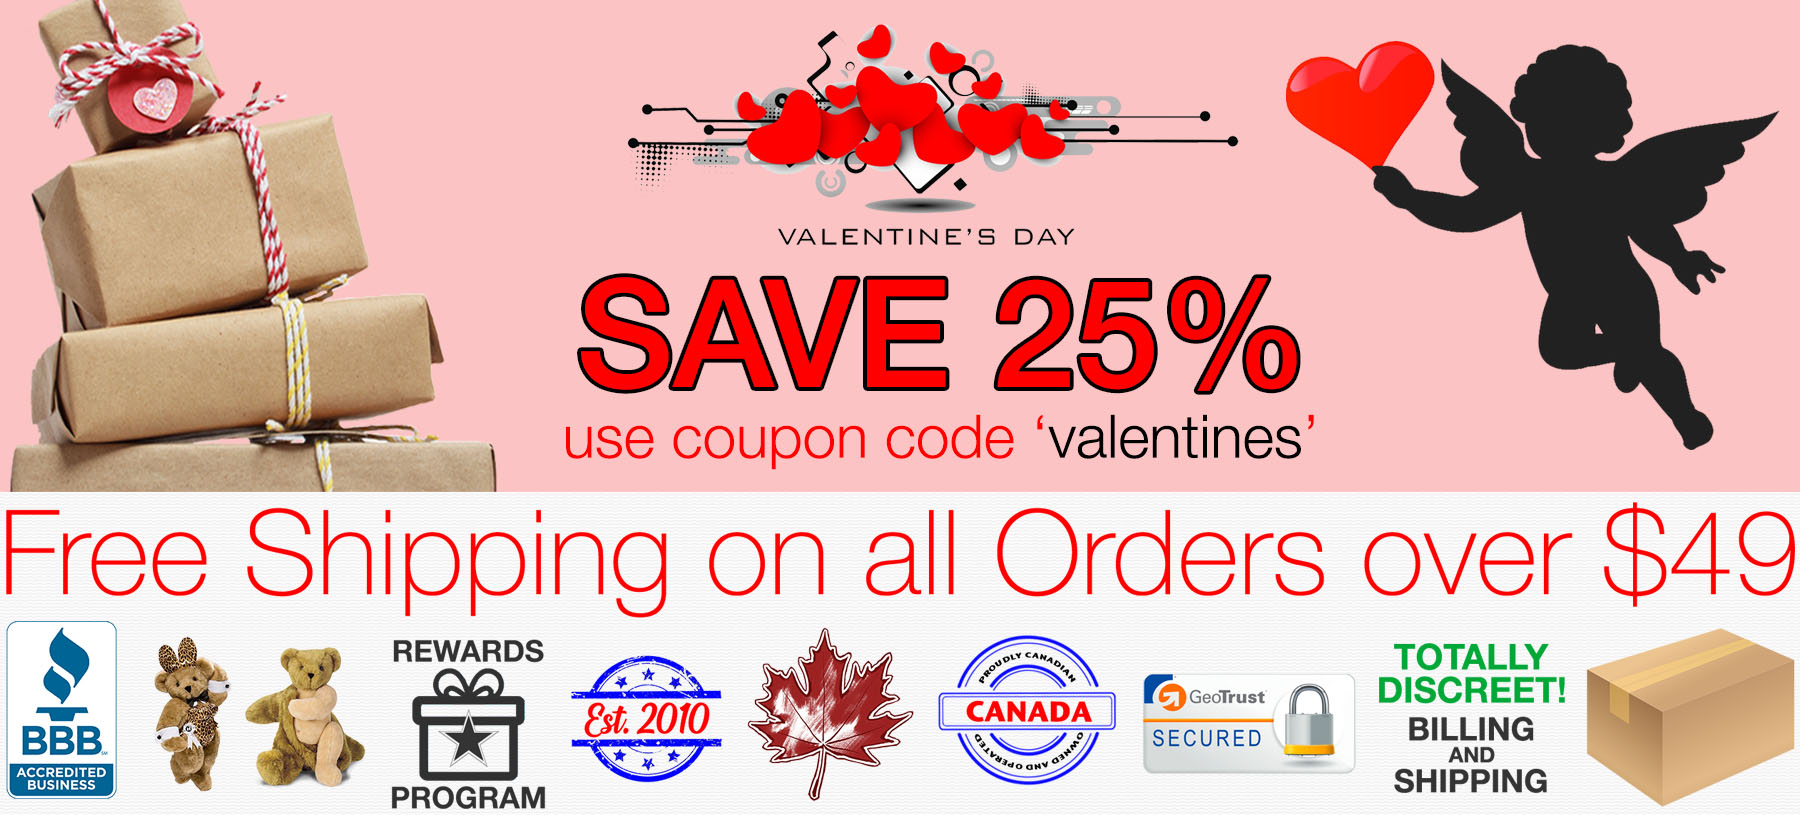 Bed Time Toys, Valentine's Day Sex Toy Sale, Sex Toys Canada